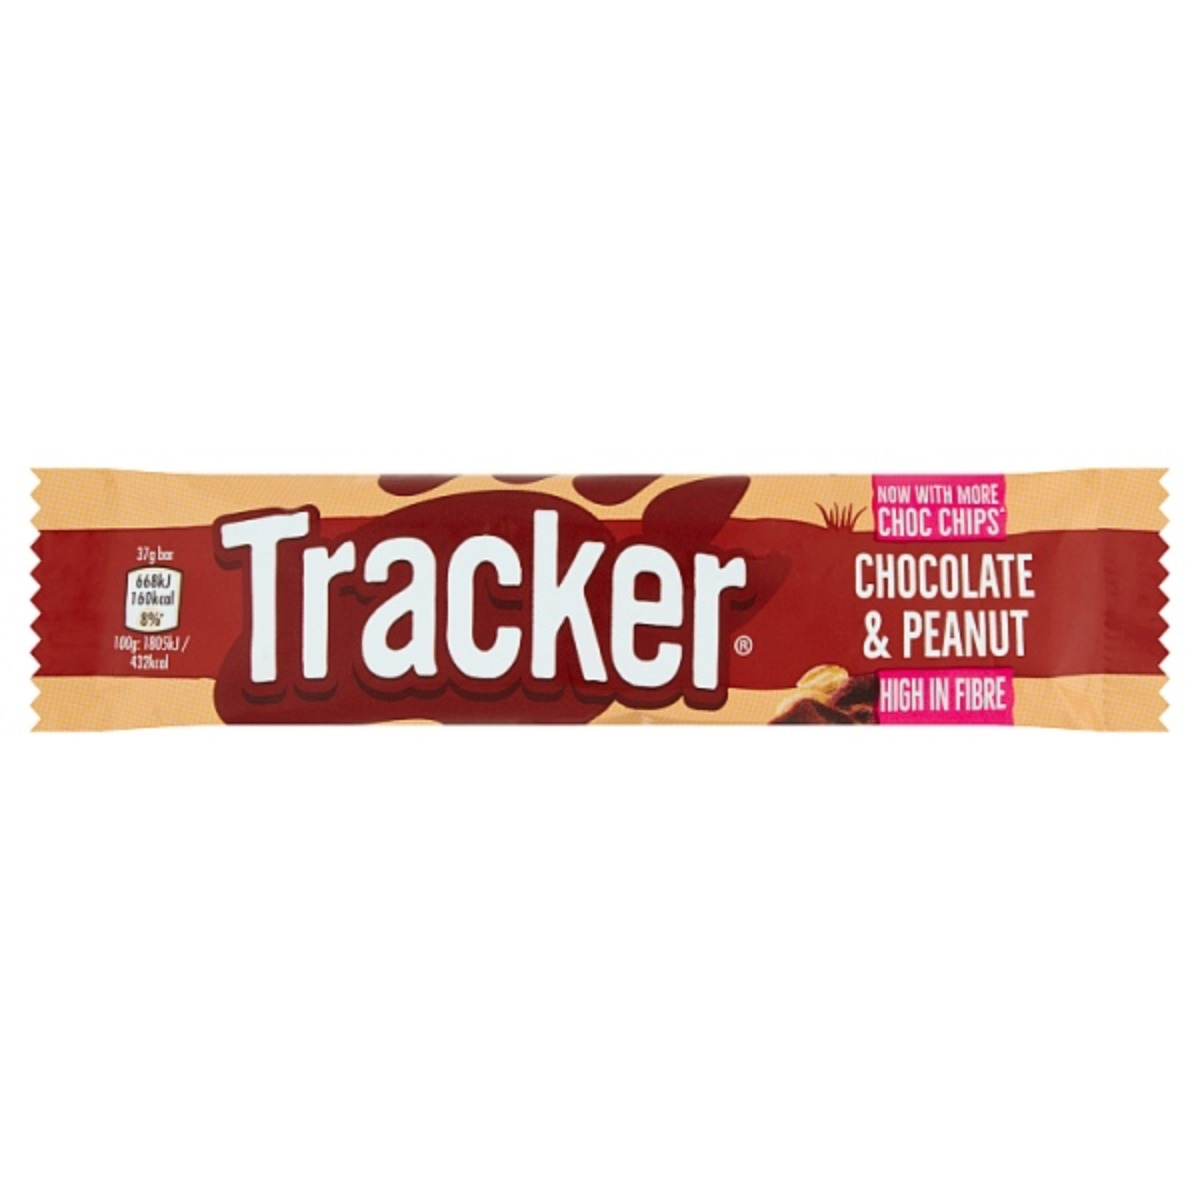 Tracker Chocolate & Peanut Bars 2x37g